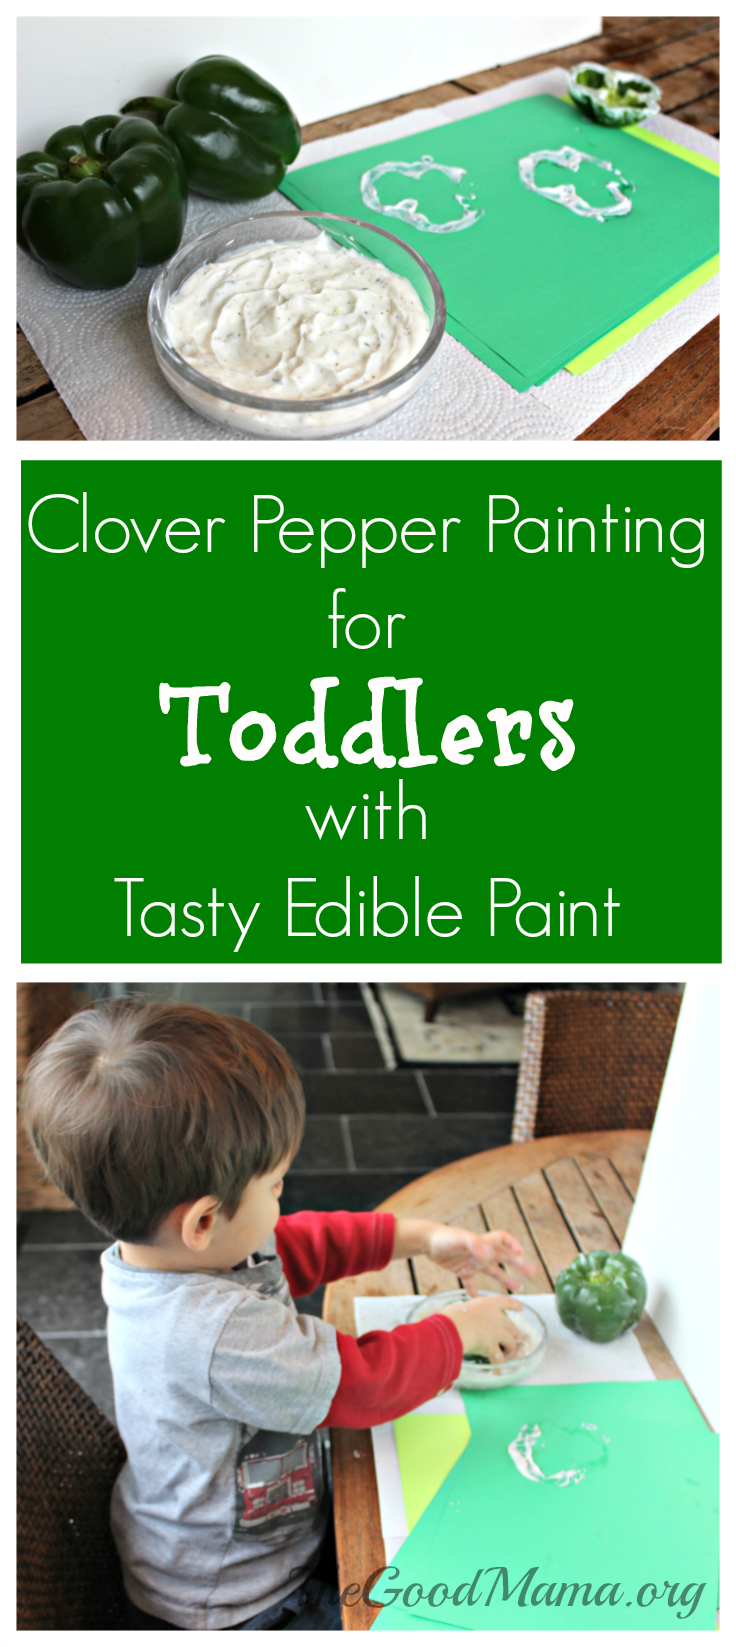 Clover Pepper Painting for Toddlers with Tasty edible Paint